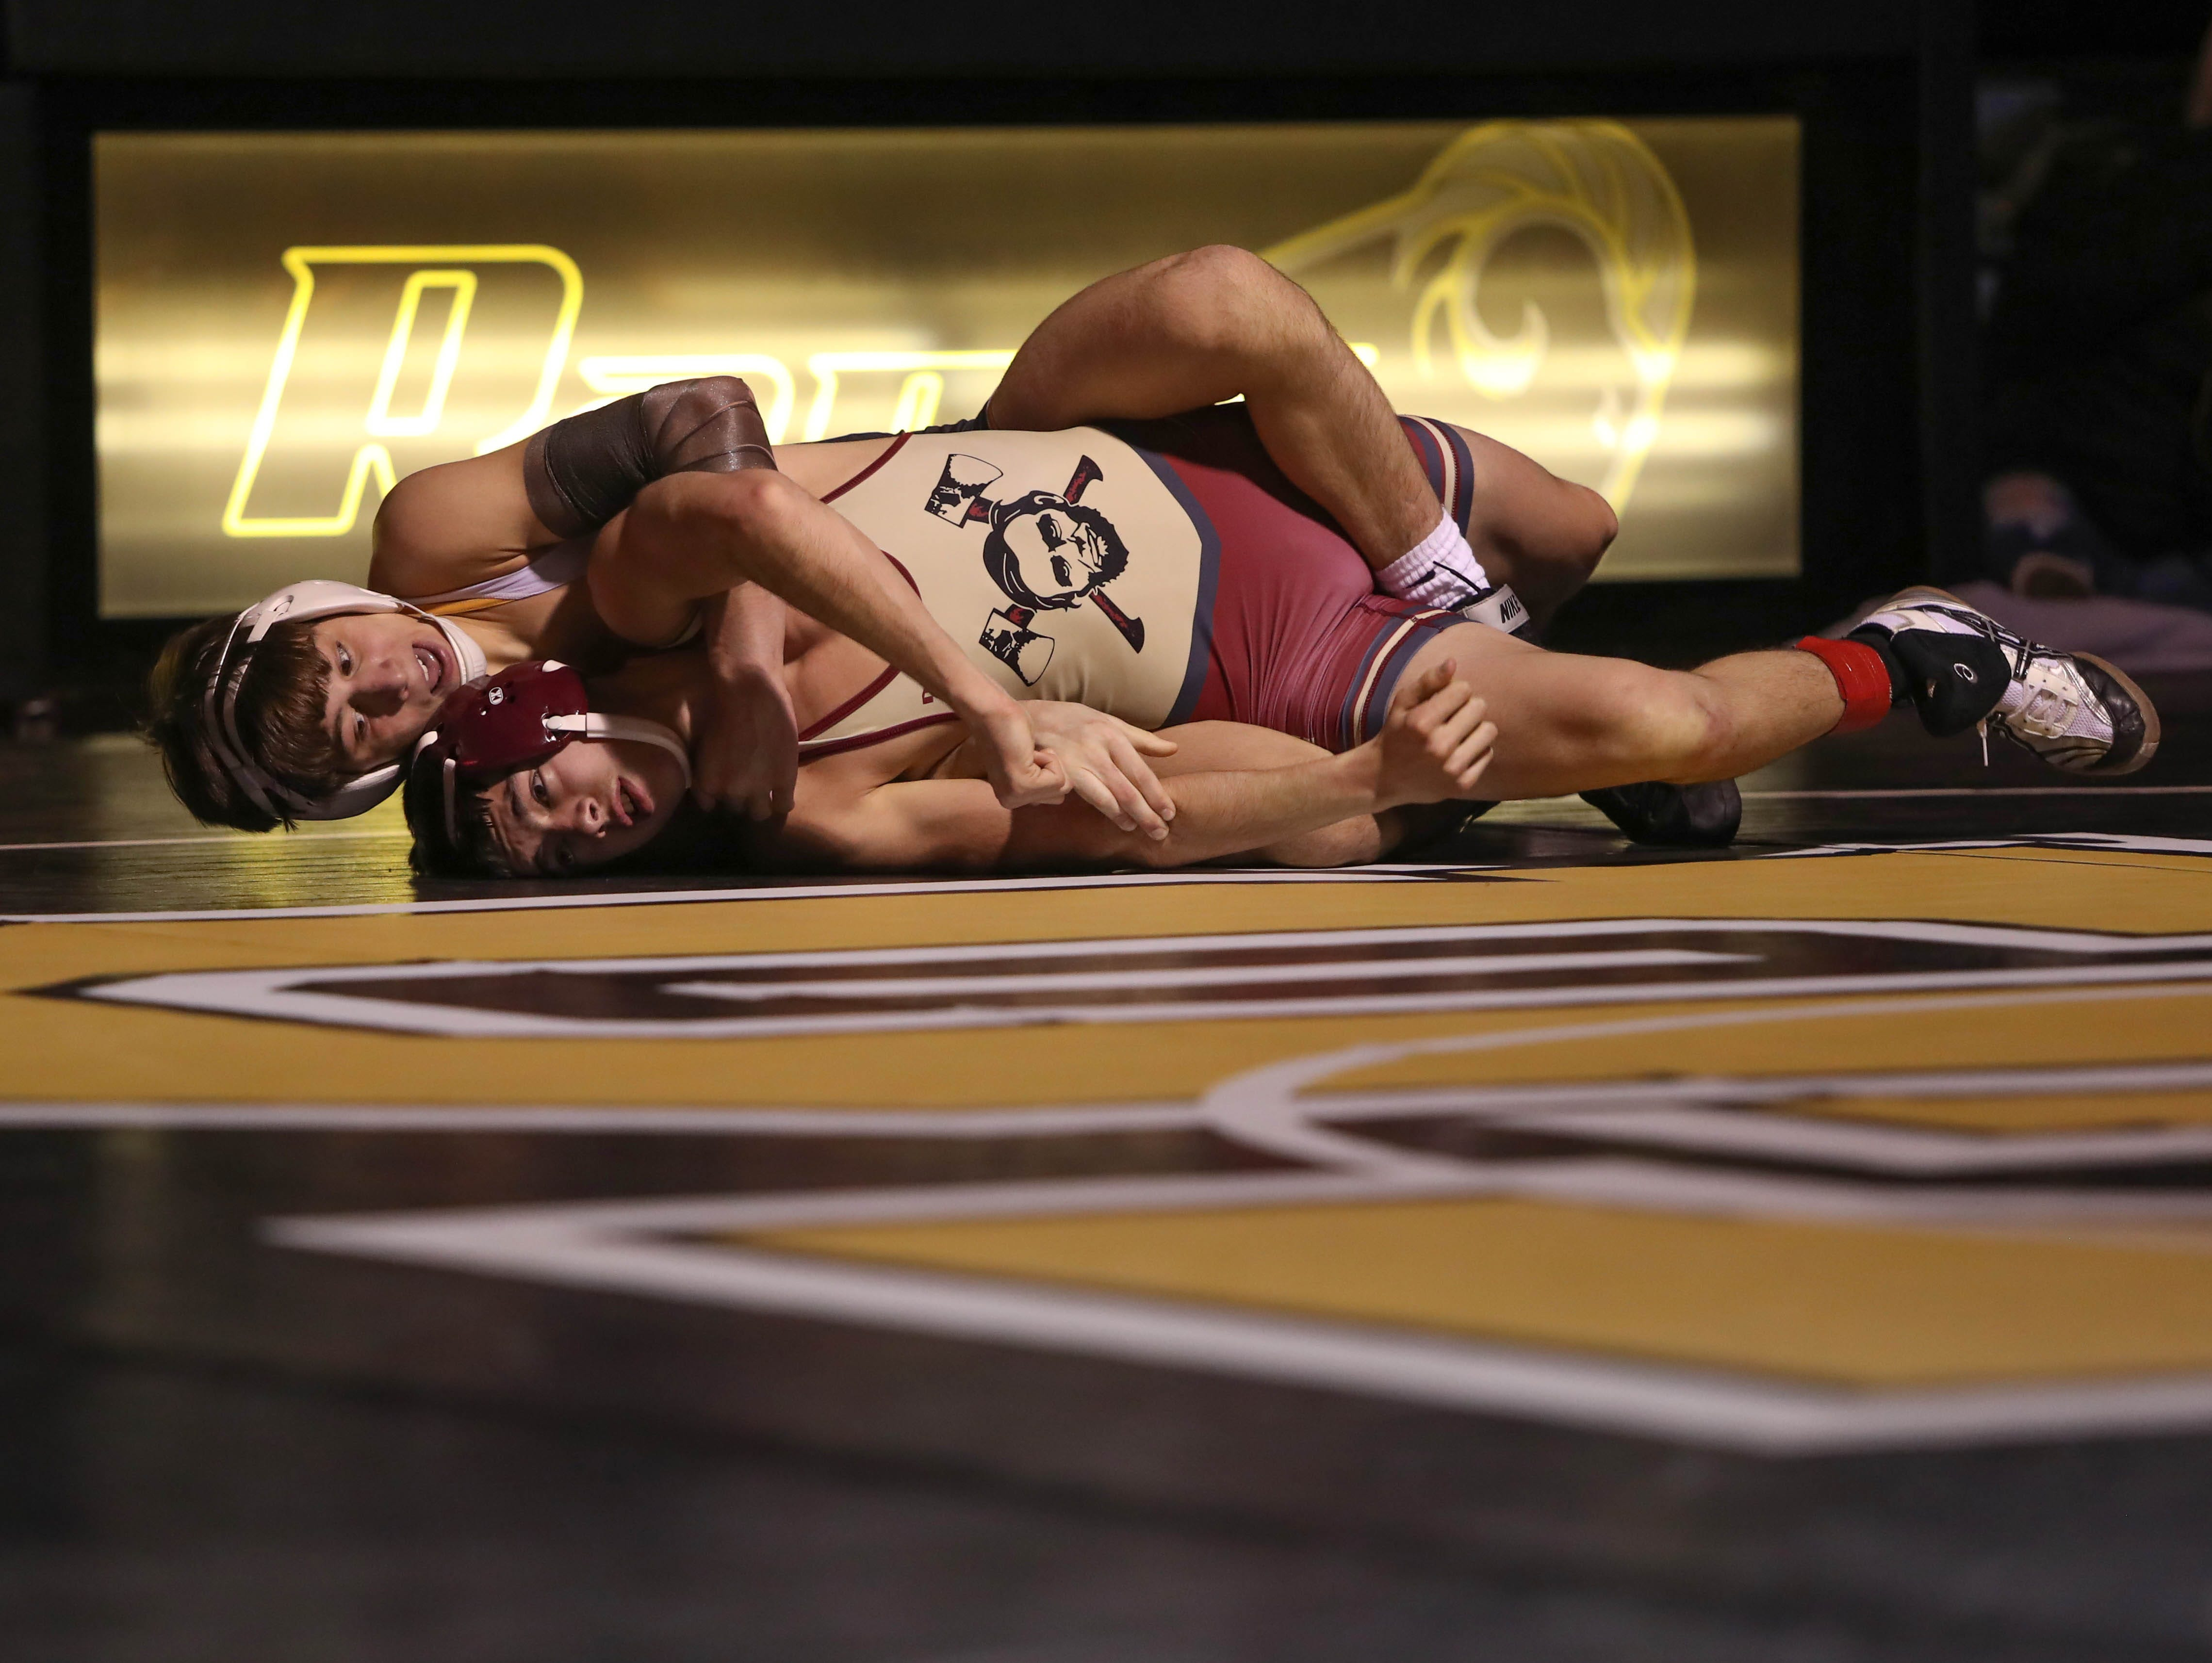 Southeast Polk's Joel Jesuroga wrestles with Des Moines Lincoln's Nate Bell. The Rams won 61-12 against Lincoln in the Jan. 31, 2019 match at Southeast Polk High.